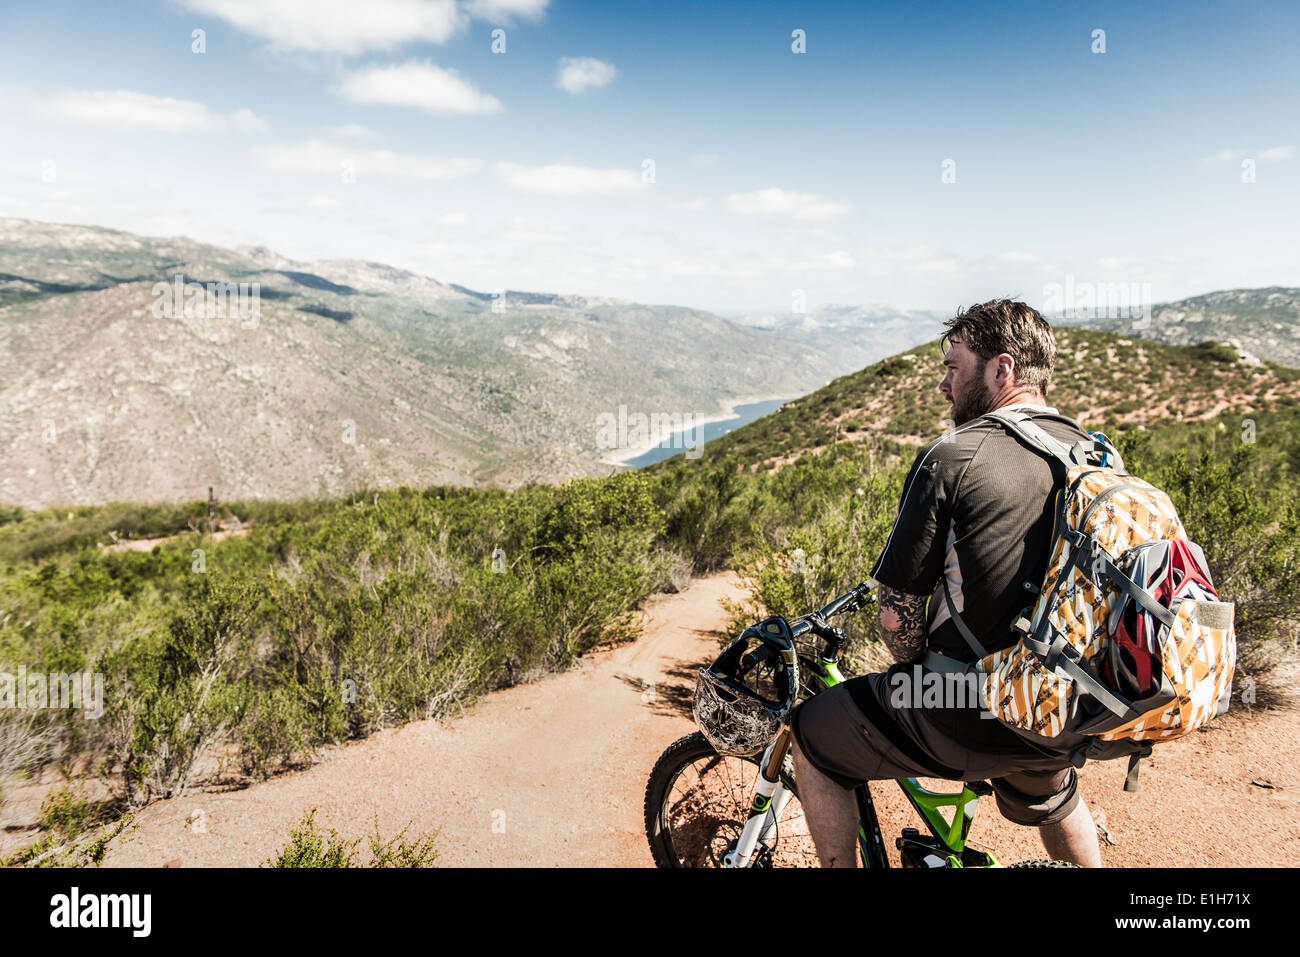 Downhill mountain biker guardando a vista Immagini Stock